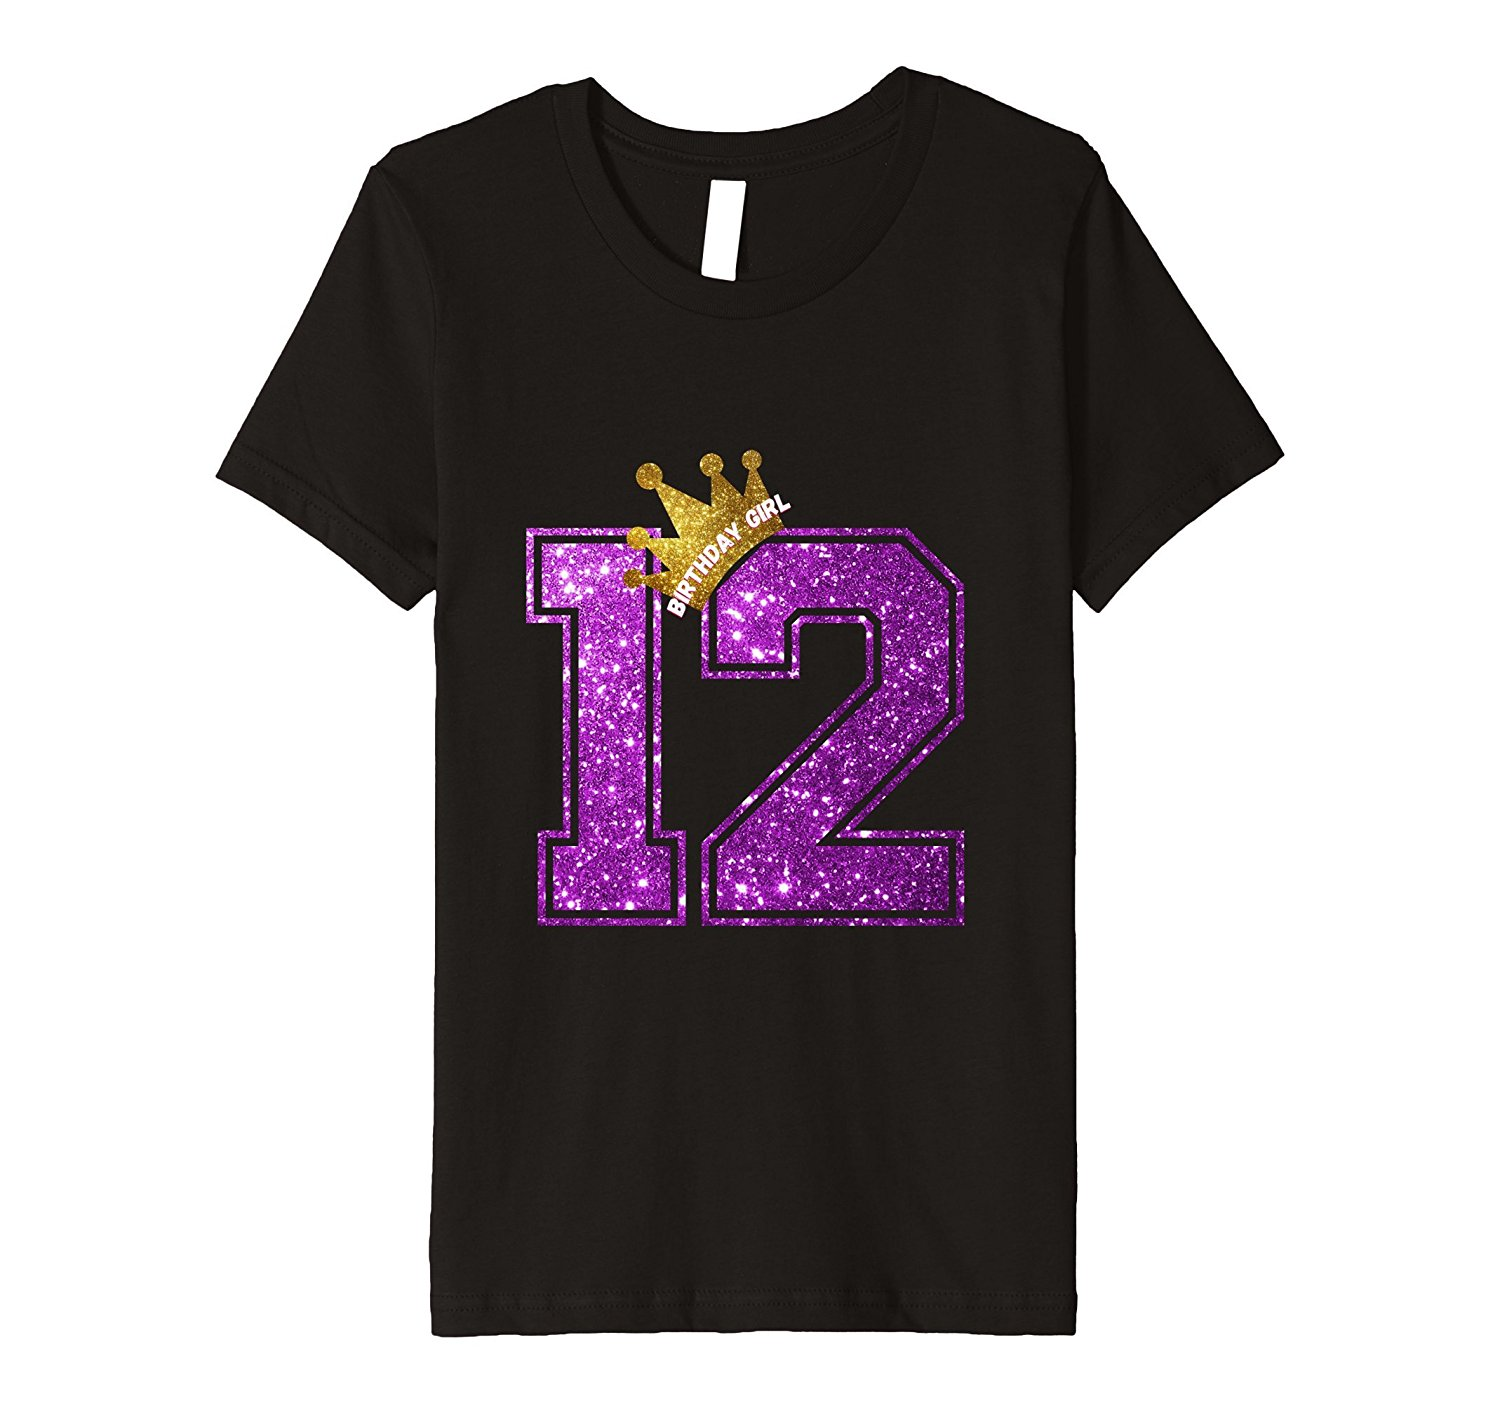 29f175ad Cheap 12th Man T Shirt, find 12th Man T Shirt deals on line at ...